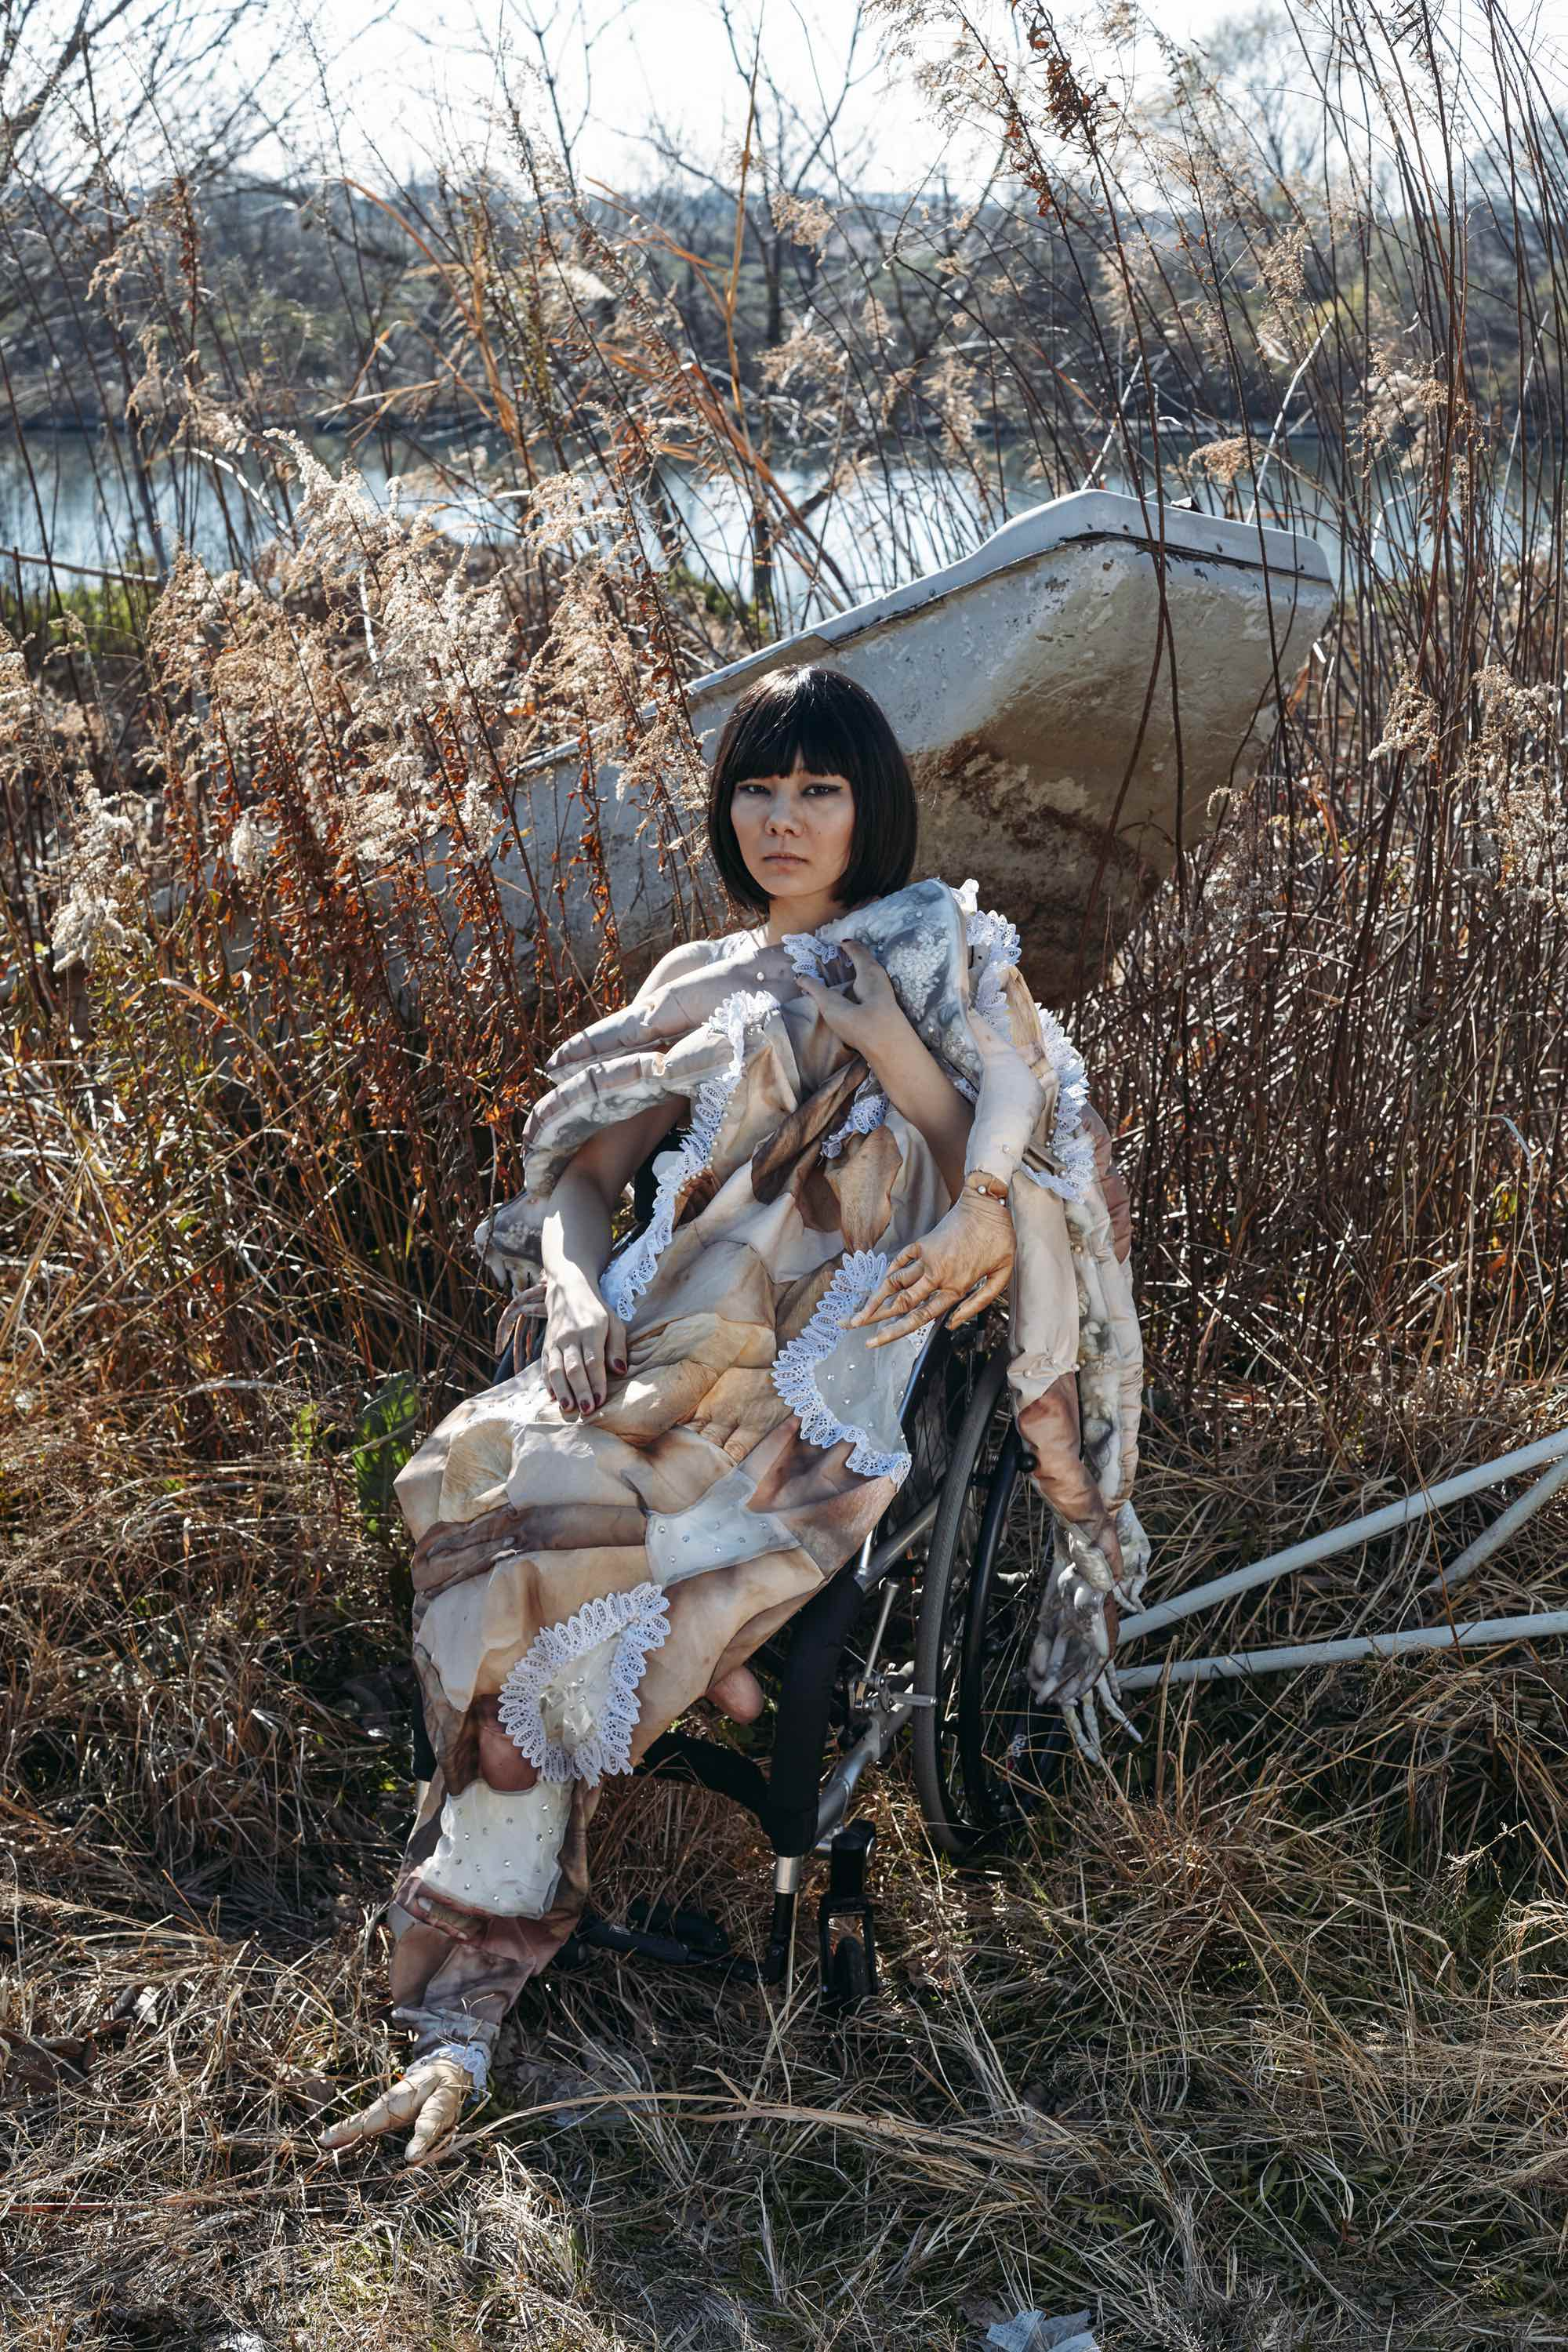 Mari Katayama, on the way home #005, 2016. © Mari Katayama. Courtesy of rin art association